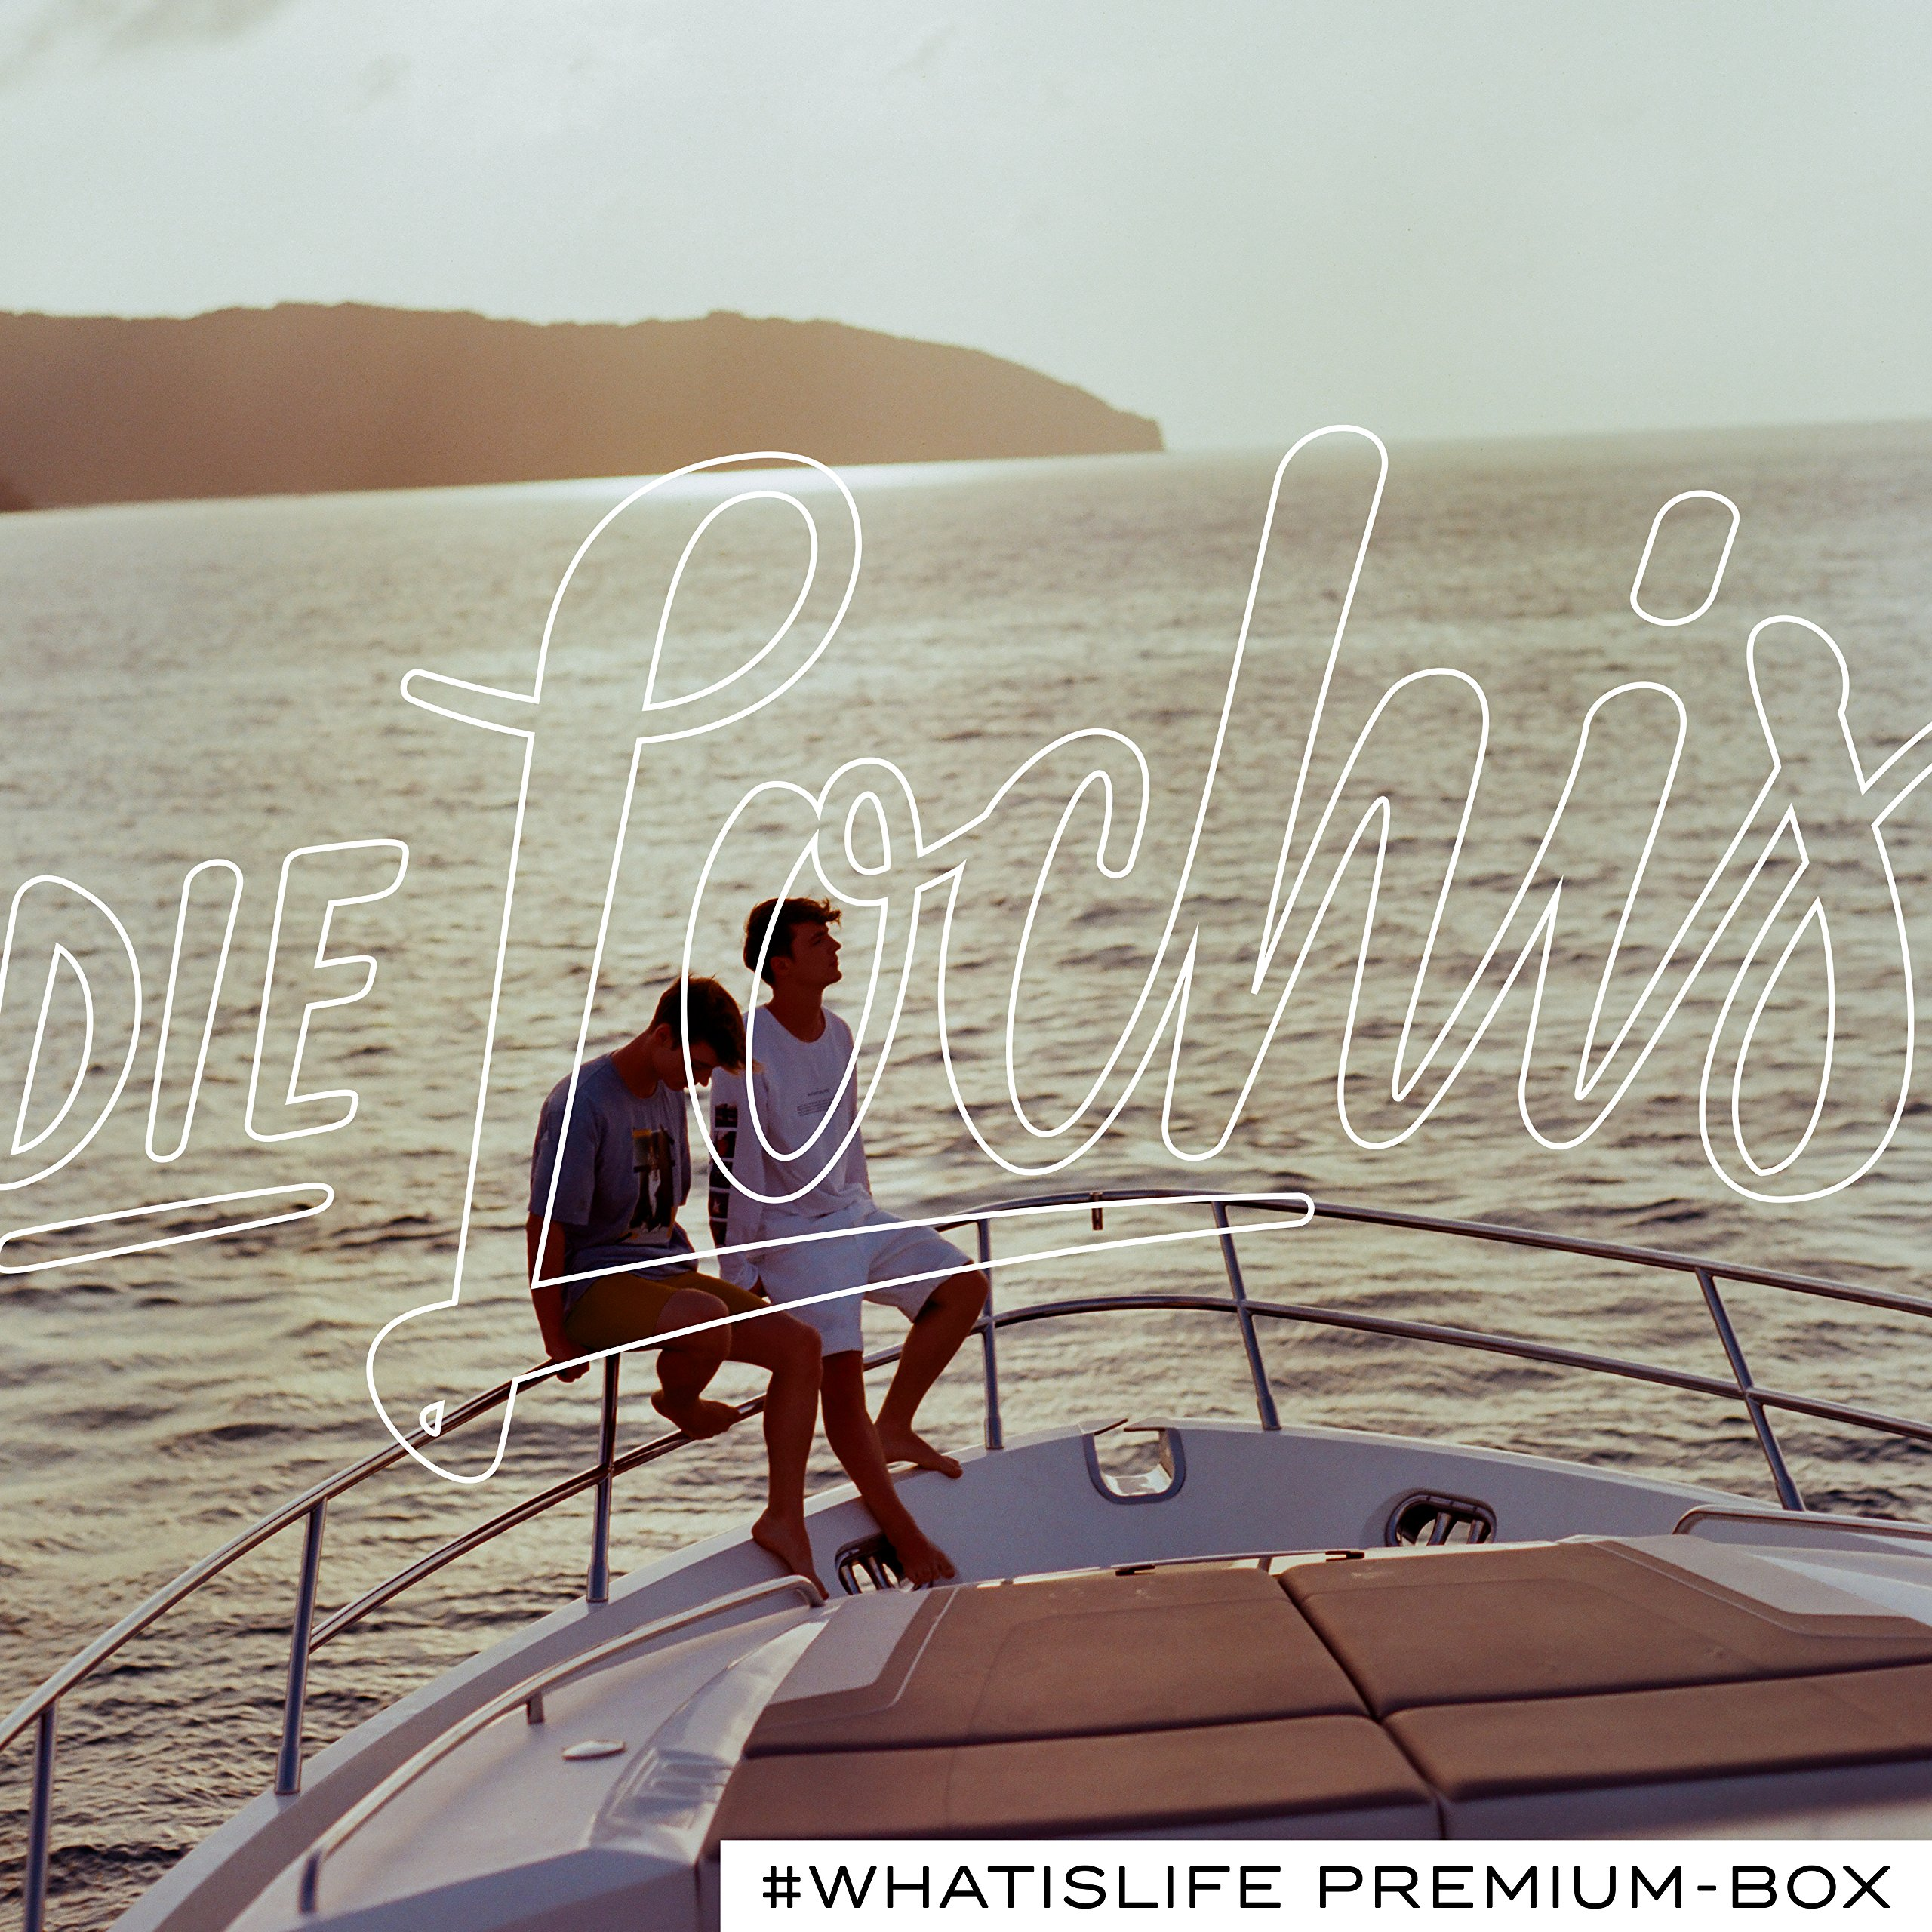 #'#whatislife Premium-Box